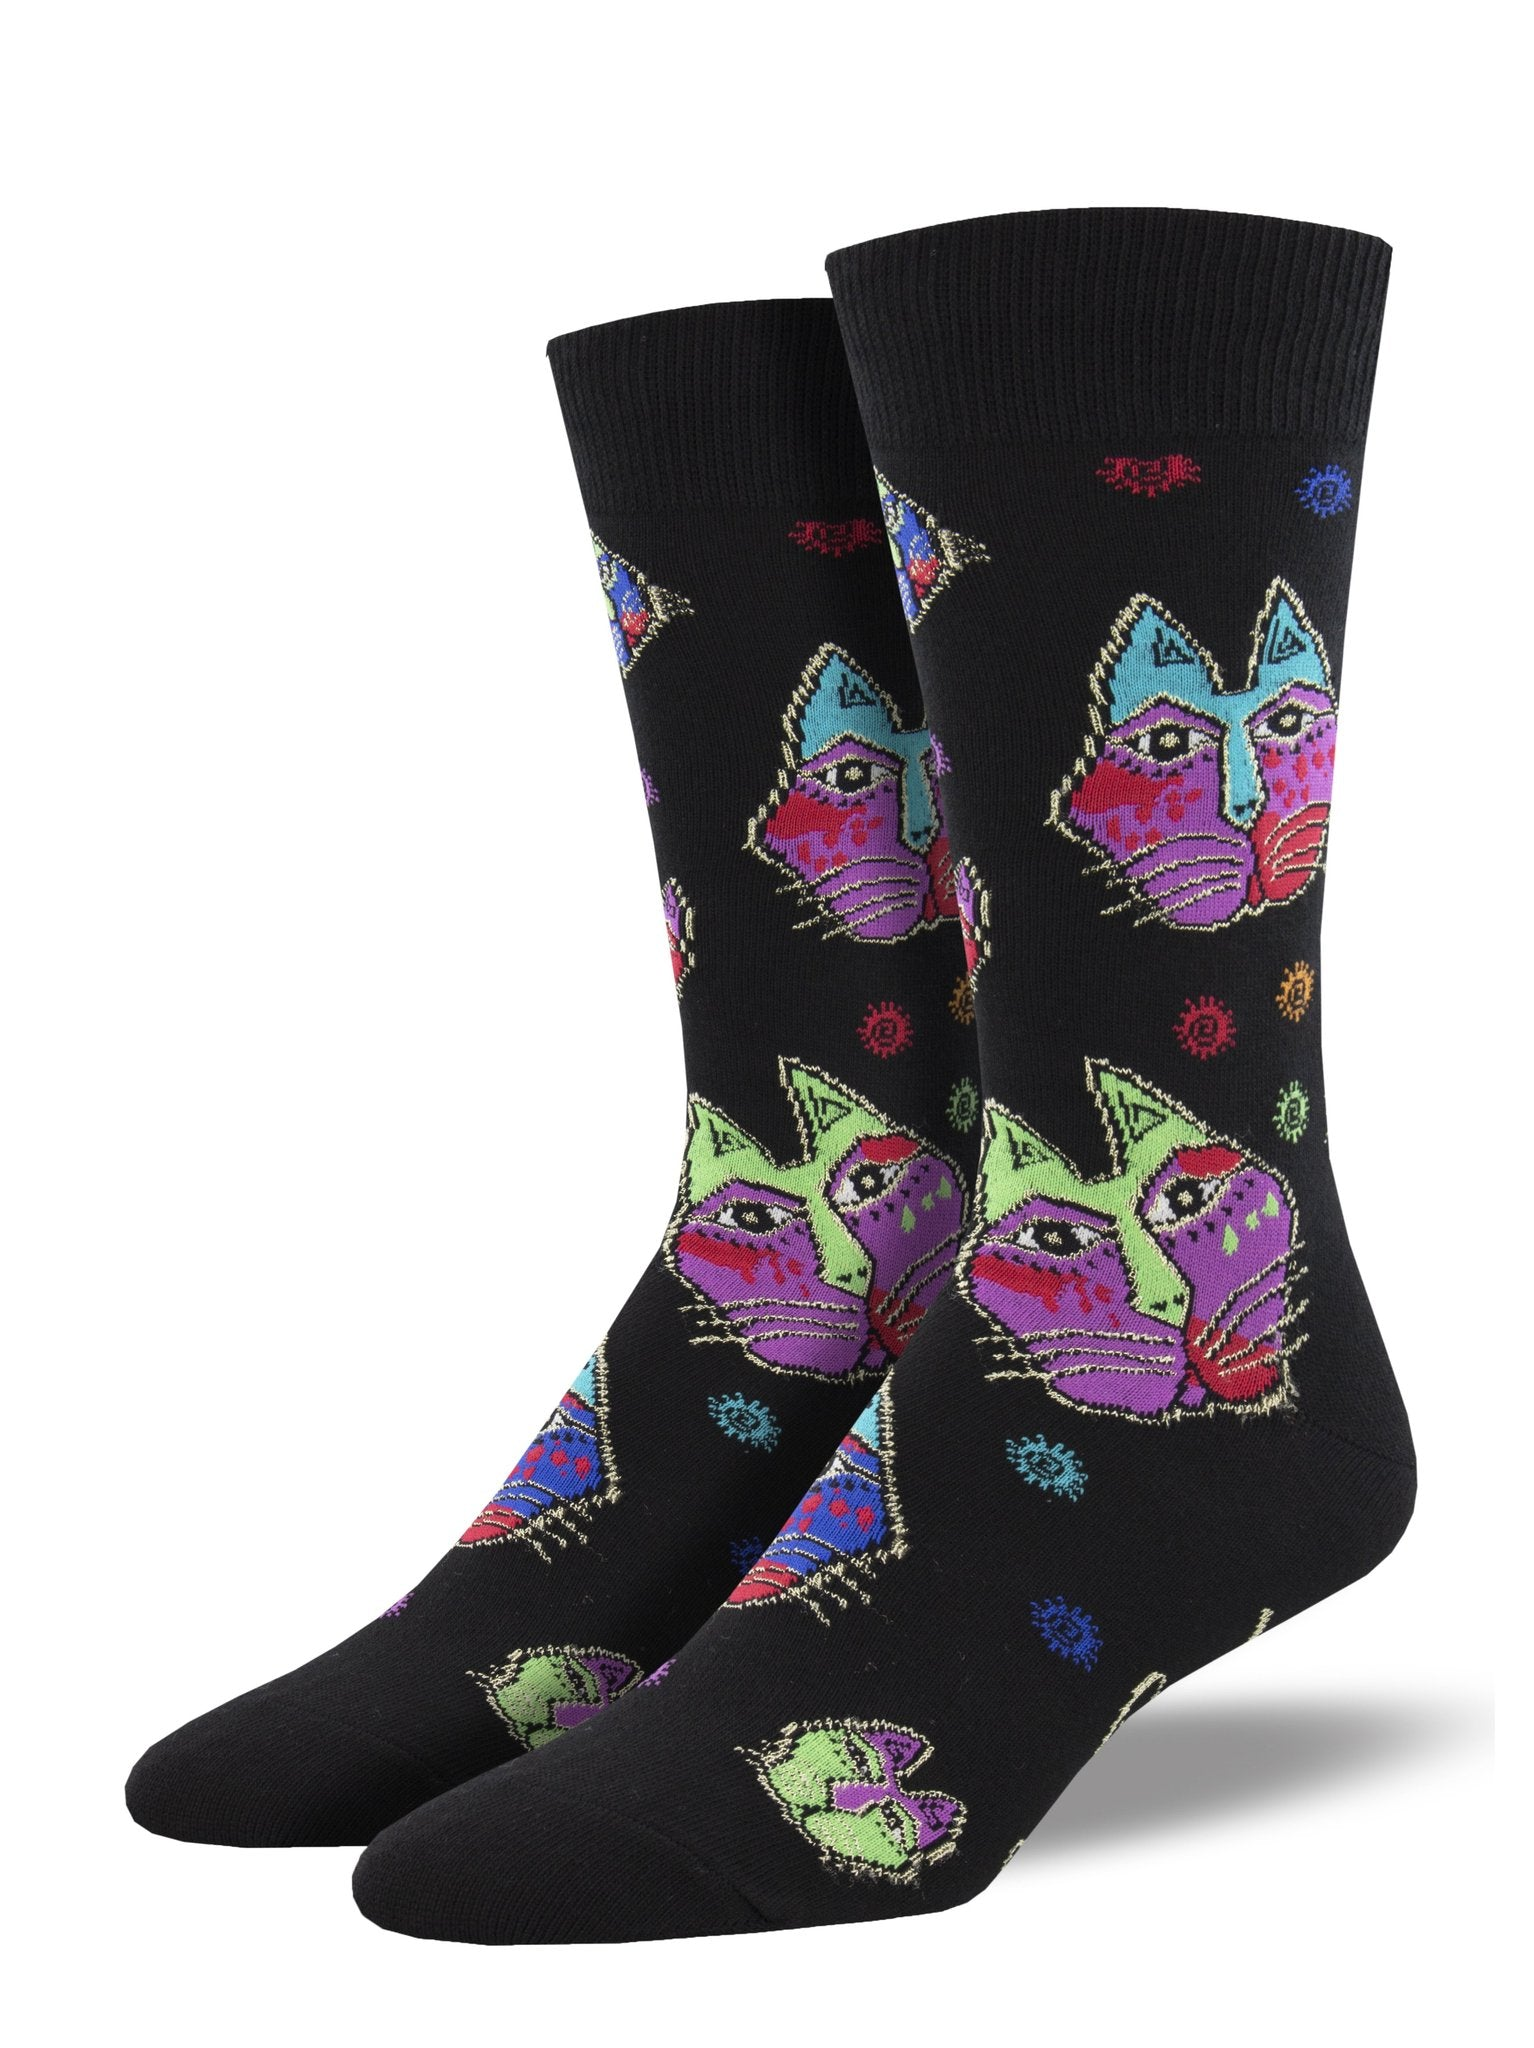 Men's Laurel Burch Cat Heads Crew